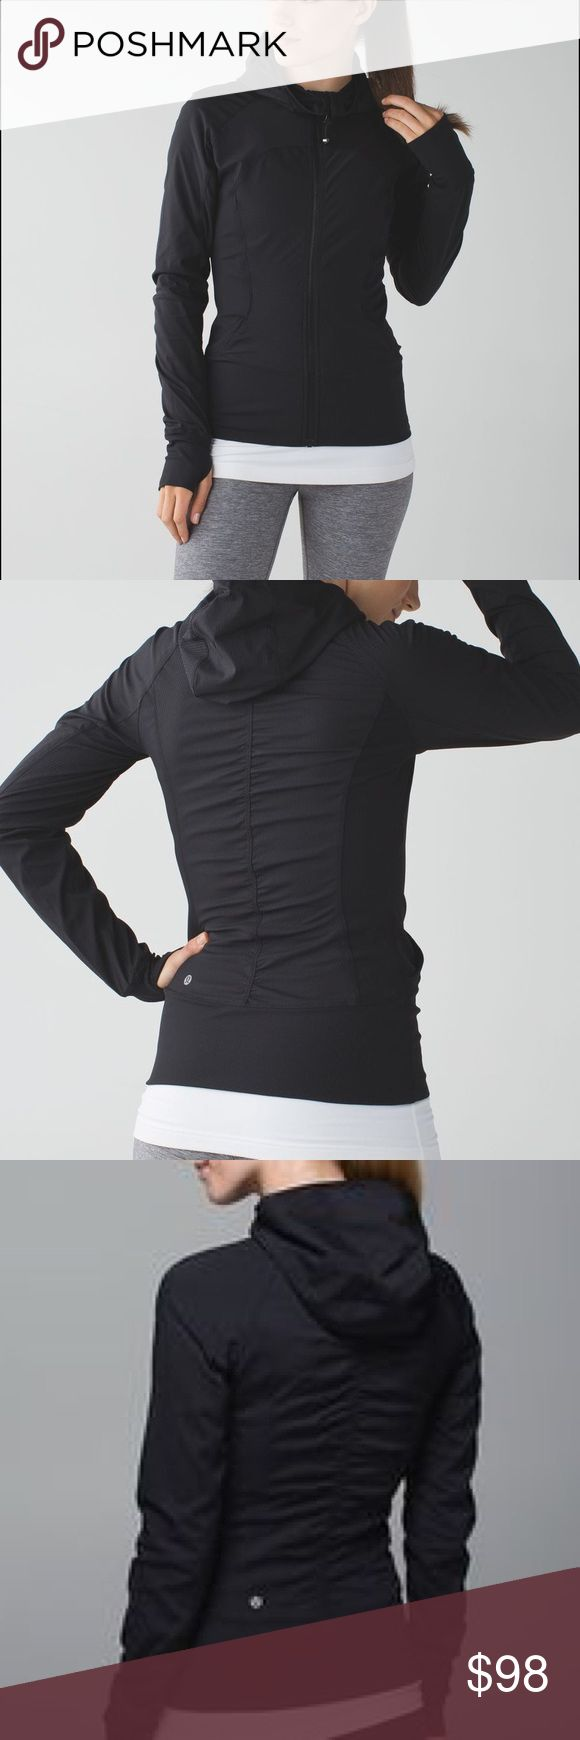 Lululemon In Flux Jacket BLK size 4 Black Lulu In Flux Jacket!! Hooded, super stretchy, thumb holes. Tighter fitting style, perfect as a layering piece and using to and from workouts or as every day wear. lululemon athletica Jackets & Coats